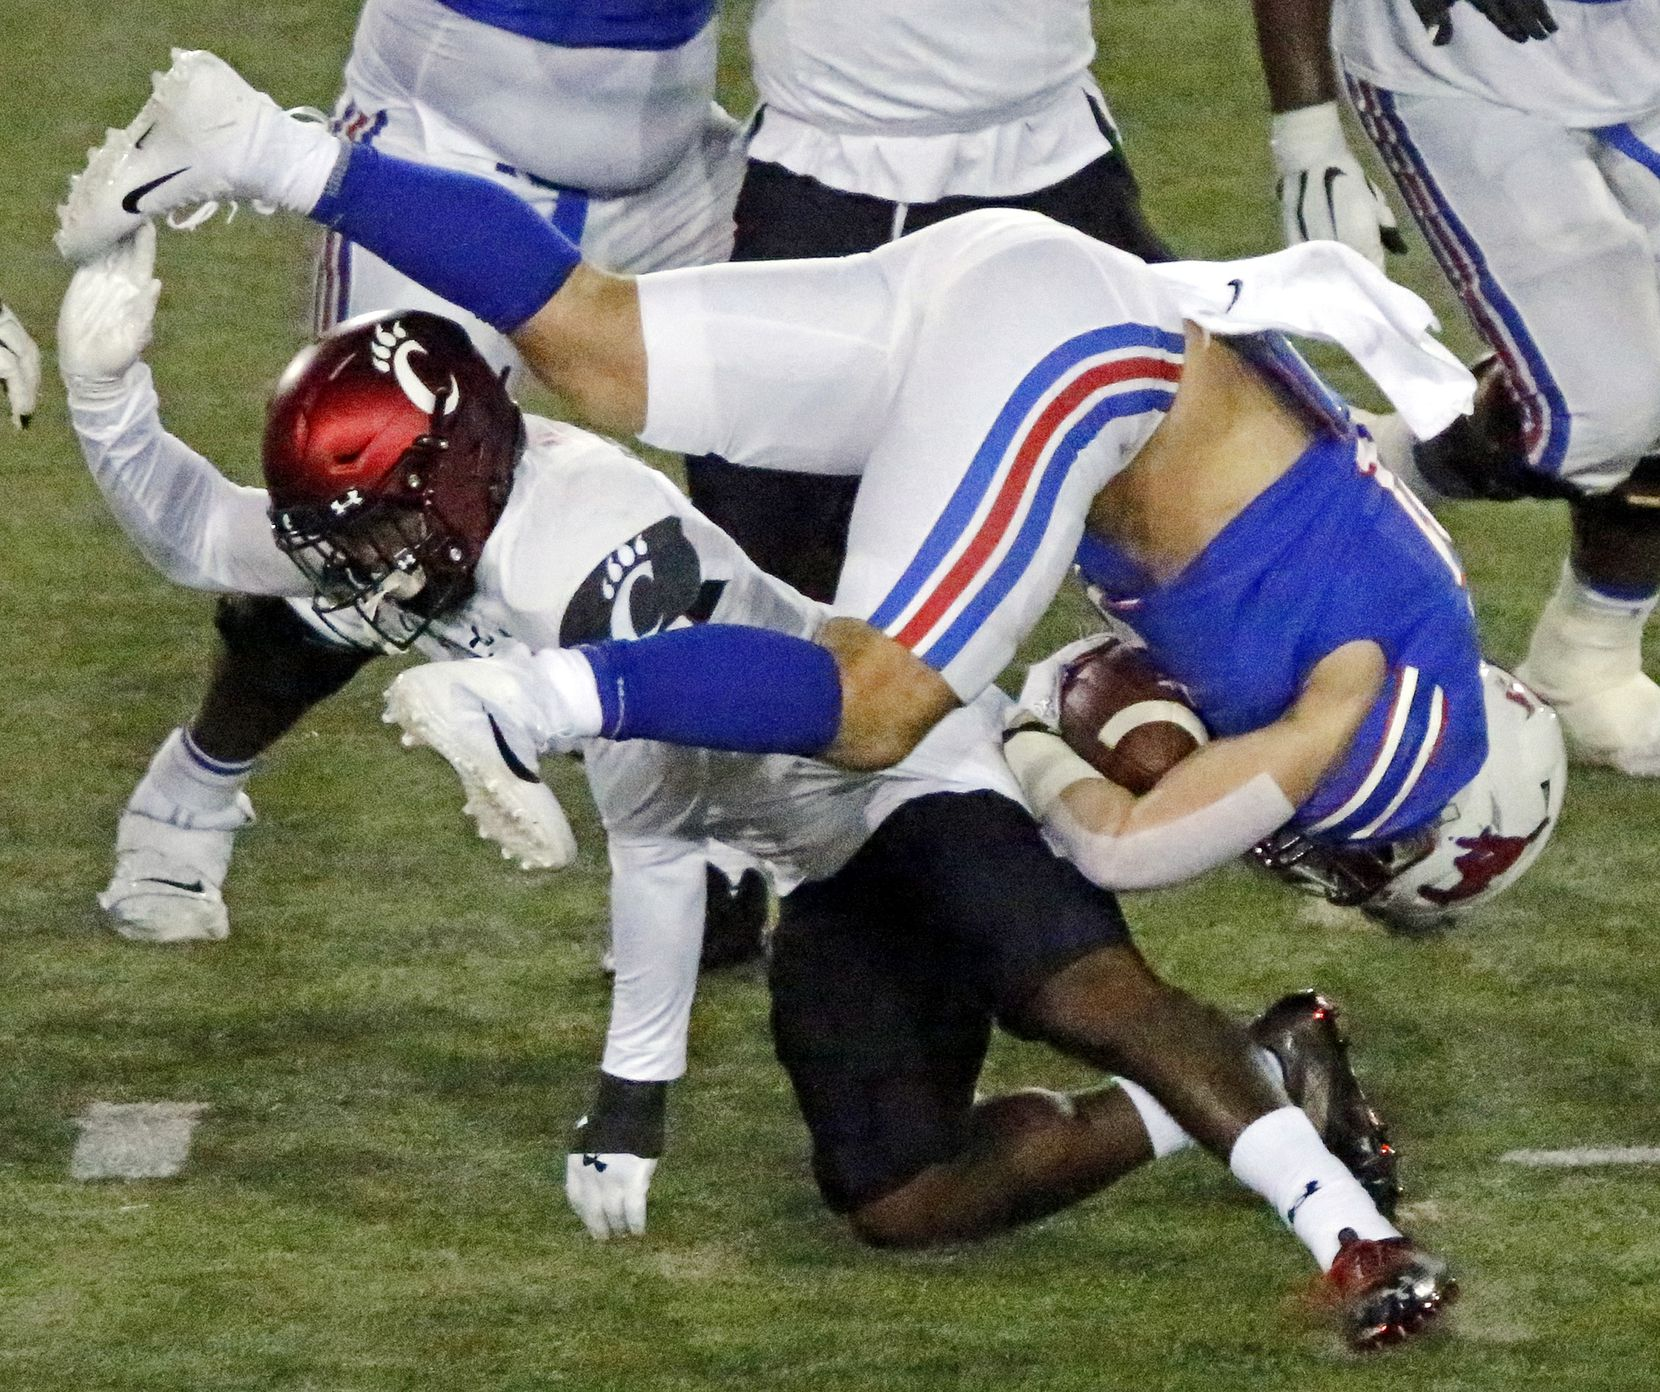 Southern Methodist Mustangs running back Tyler Lavine (31) is upended by Cincinnati Bearcats linebacker Jarell White (8) during the first half as SMU hosted Cincinati University in an AAC football game at Ford Stadium in Dallas on Saturday night, October 24, 2020. (Stewart F. House/Special Contributor)